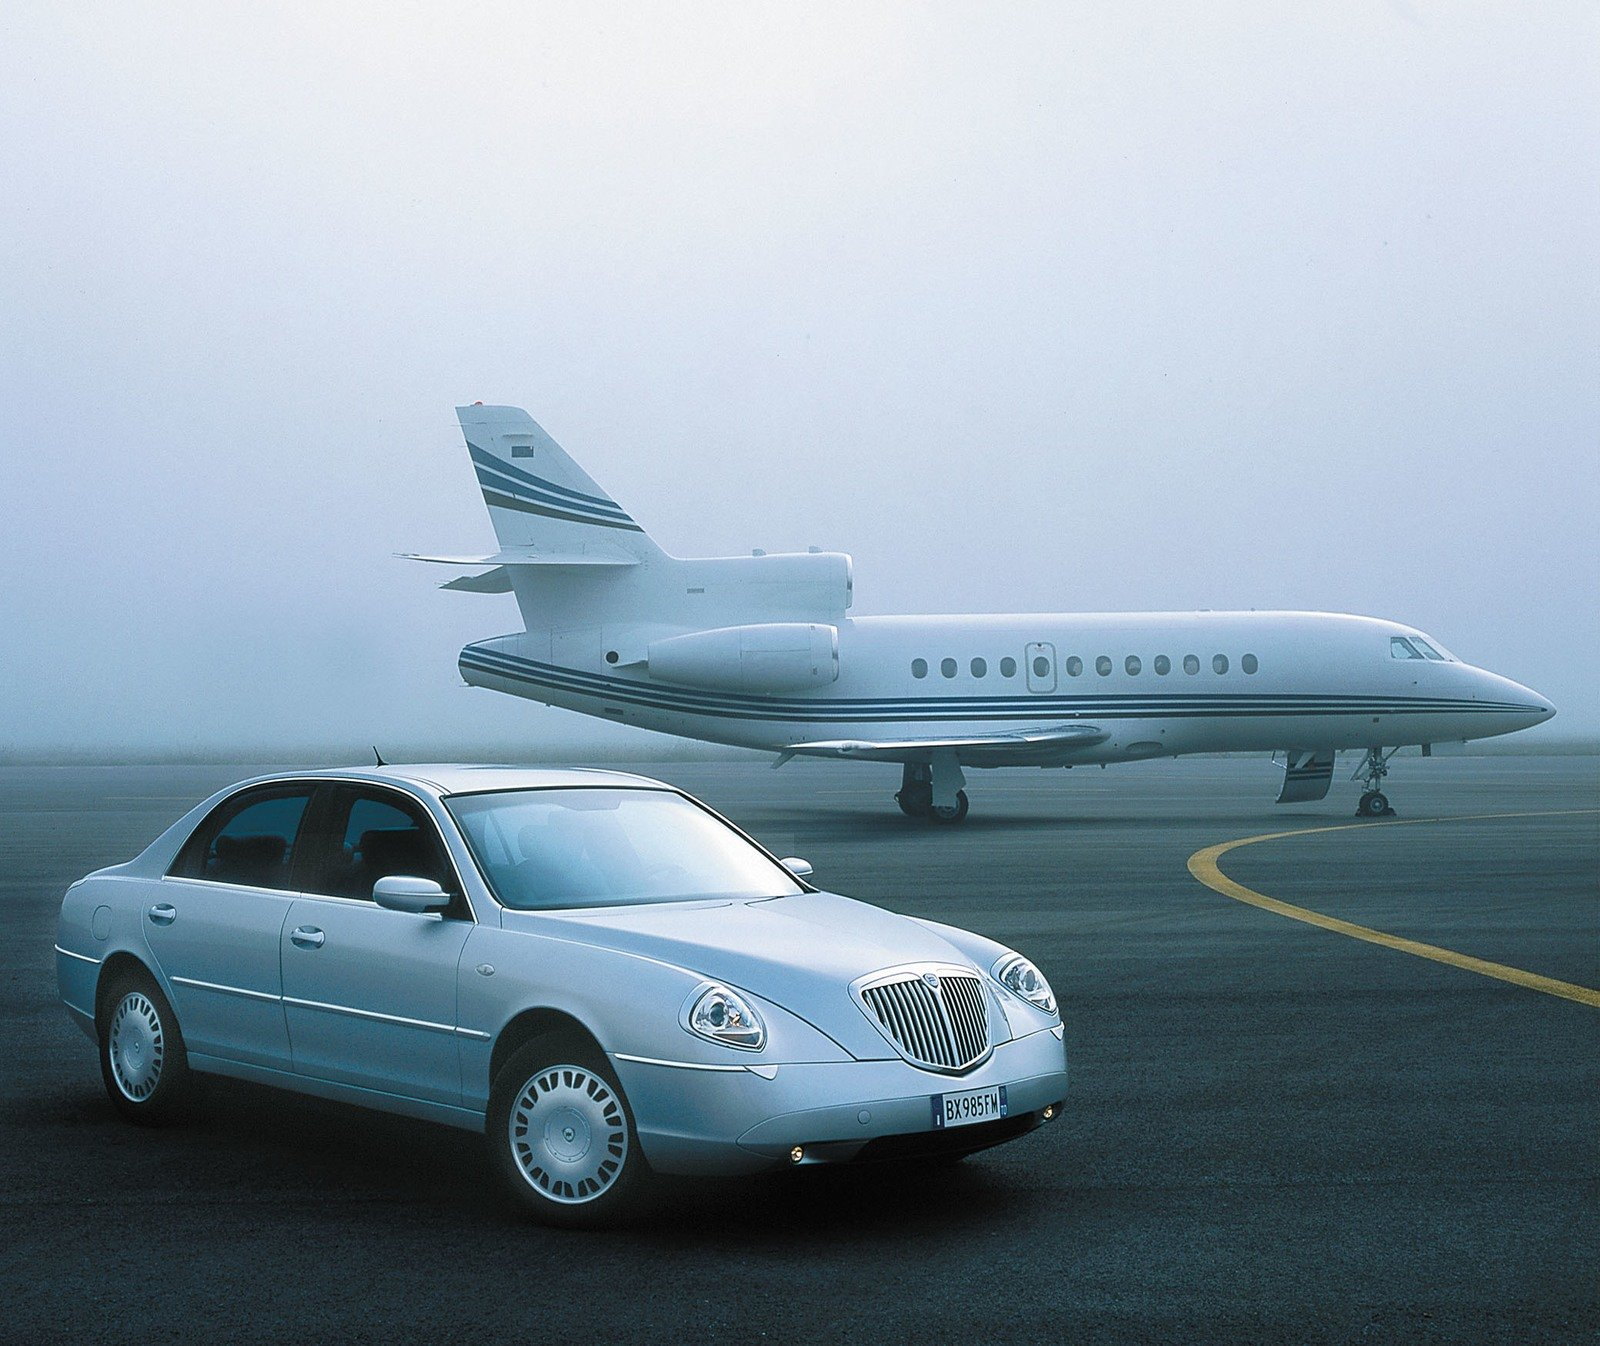 lancia thesis in uk Fiat, alfa romeo, lancia and fiat professional oem parts online store fiat, alfa romeo, lancia and fiat professional parts and accessories.